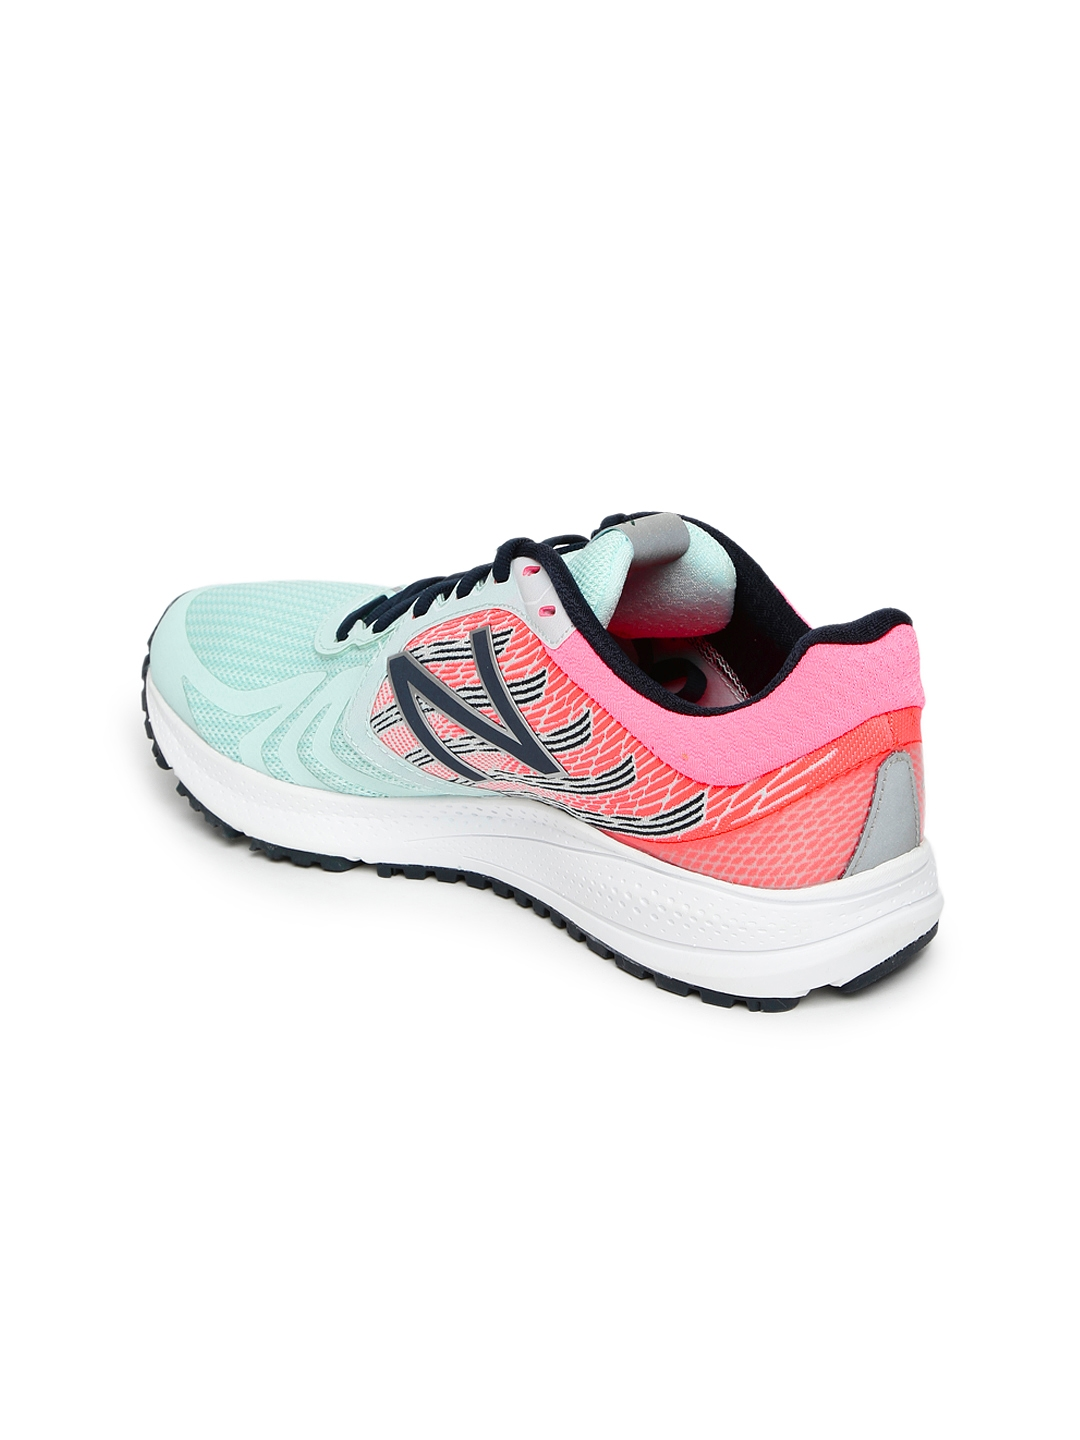 c226a3c5e33b1 Buy New Balance Women Sea Green & Pink WPACEWP2 Running Shoes ...